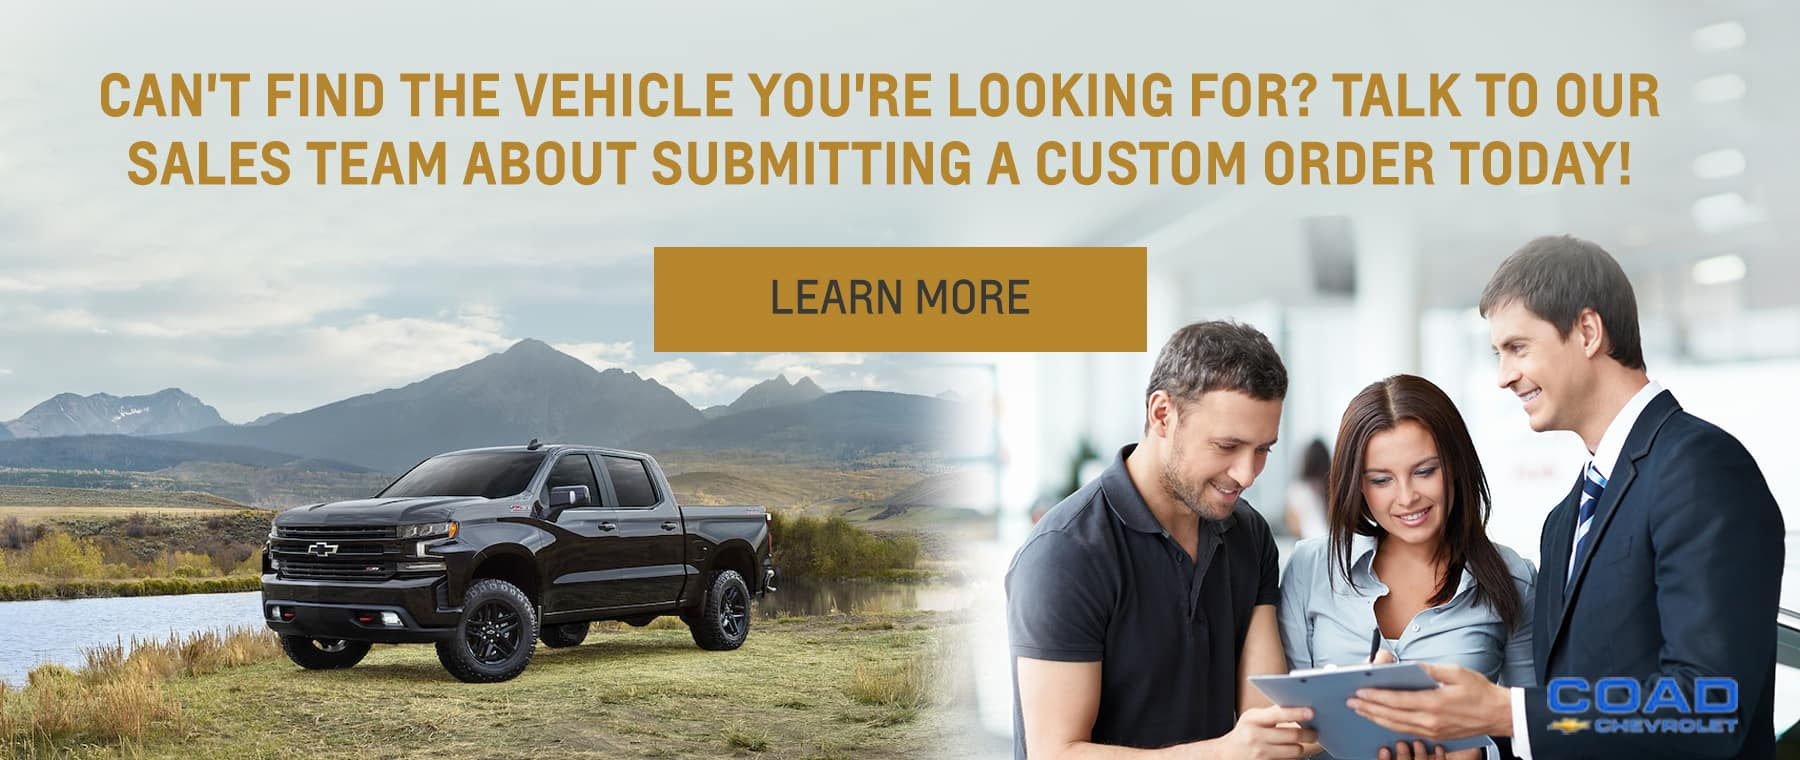 Get More For Your Trade-In. * We'll Buy Your Car * Shop from Home & Schedule Delivery * Lifetime Warranty on all New & select Pre-Owned Vehicles * Award Winning Service Department * 50+ Years in Business, since 1946 * Dedicated to the Customer and Community * Choose from our Top Selection